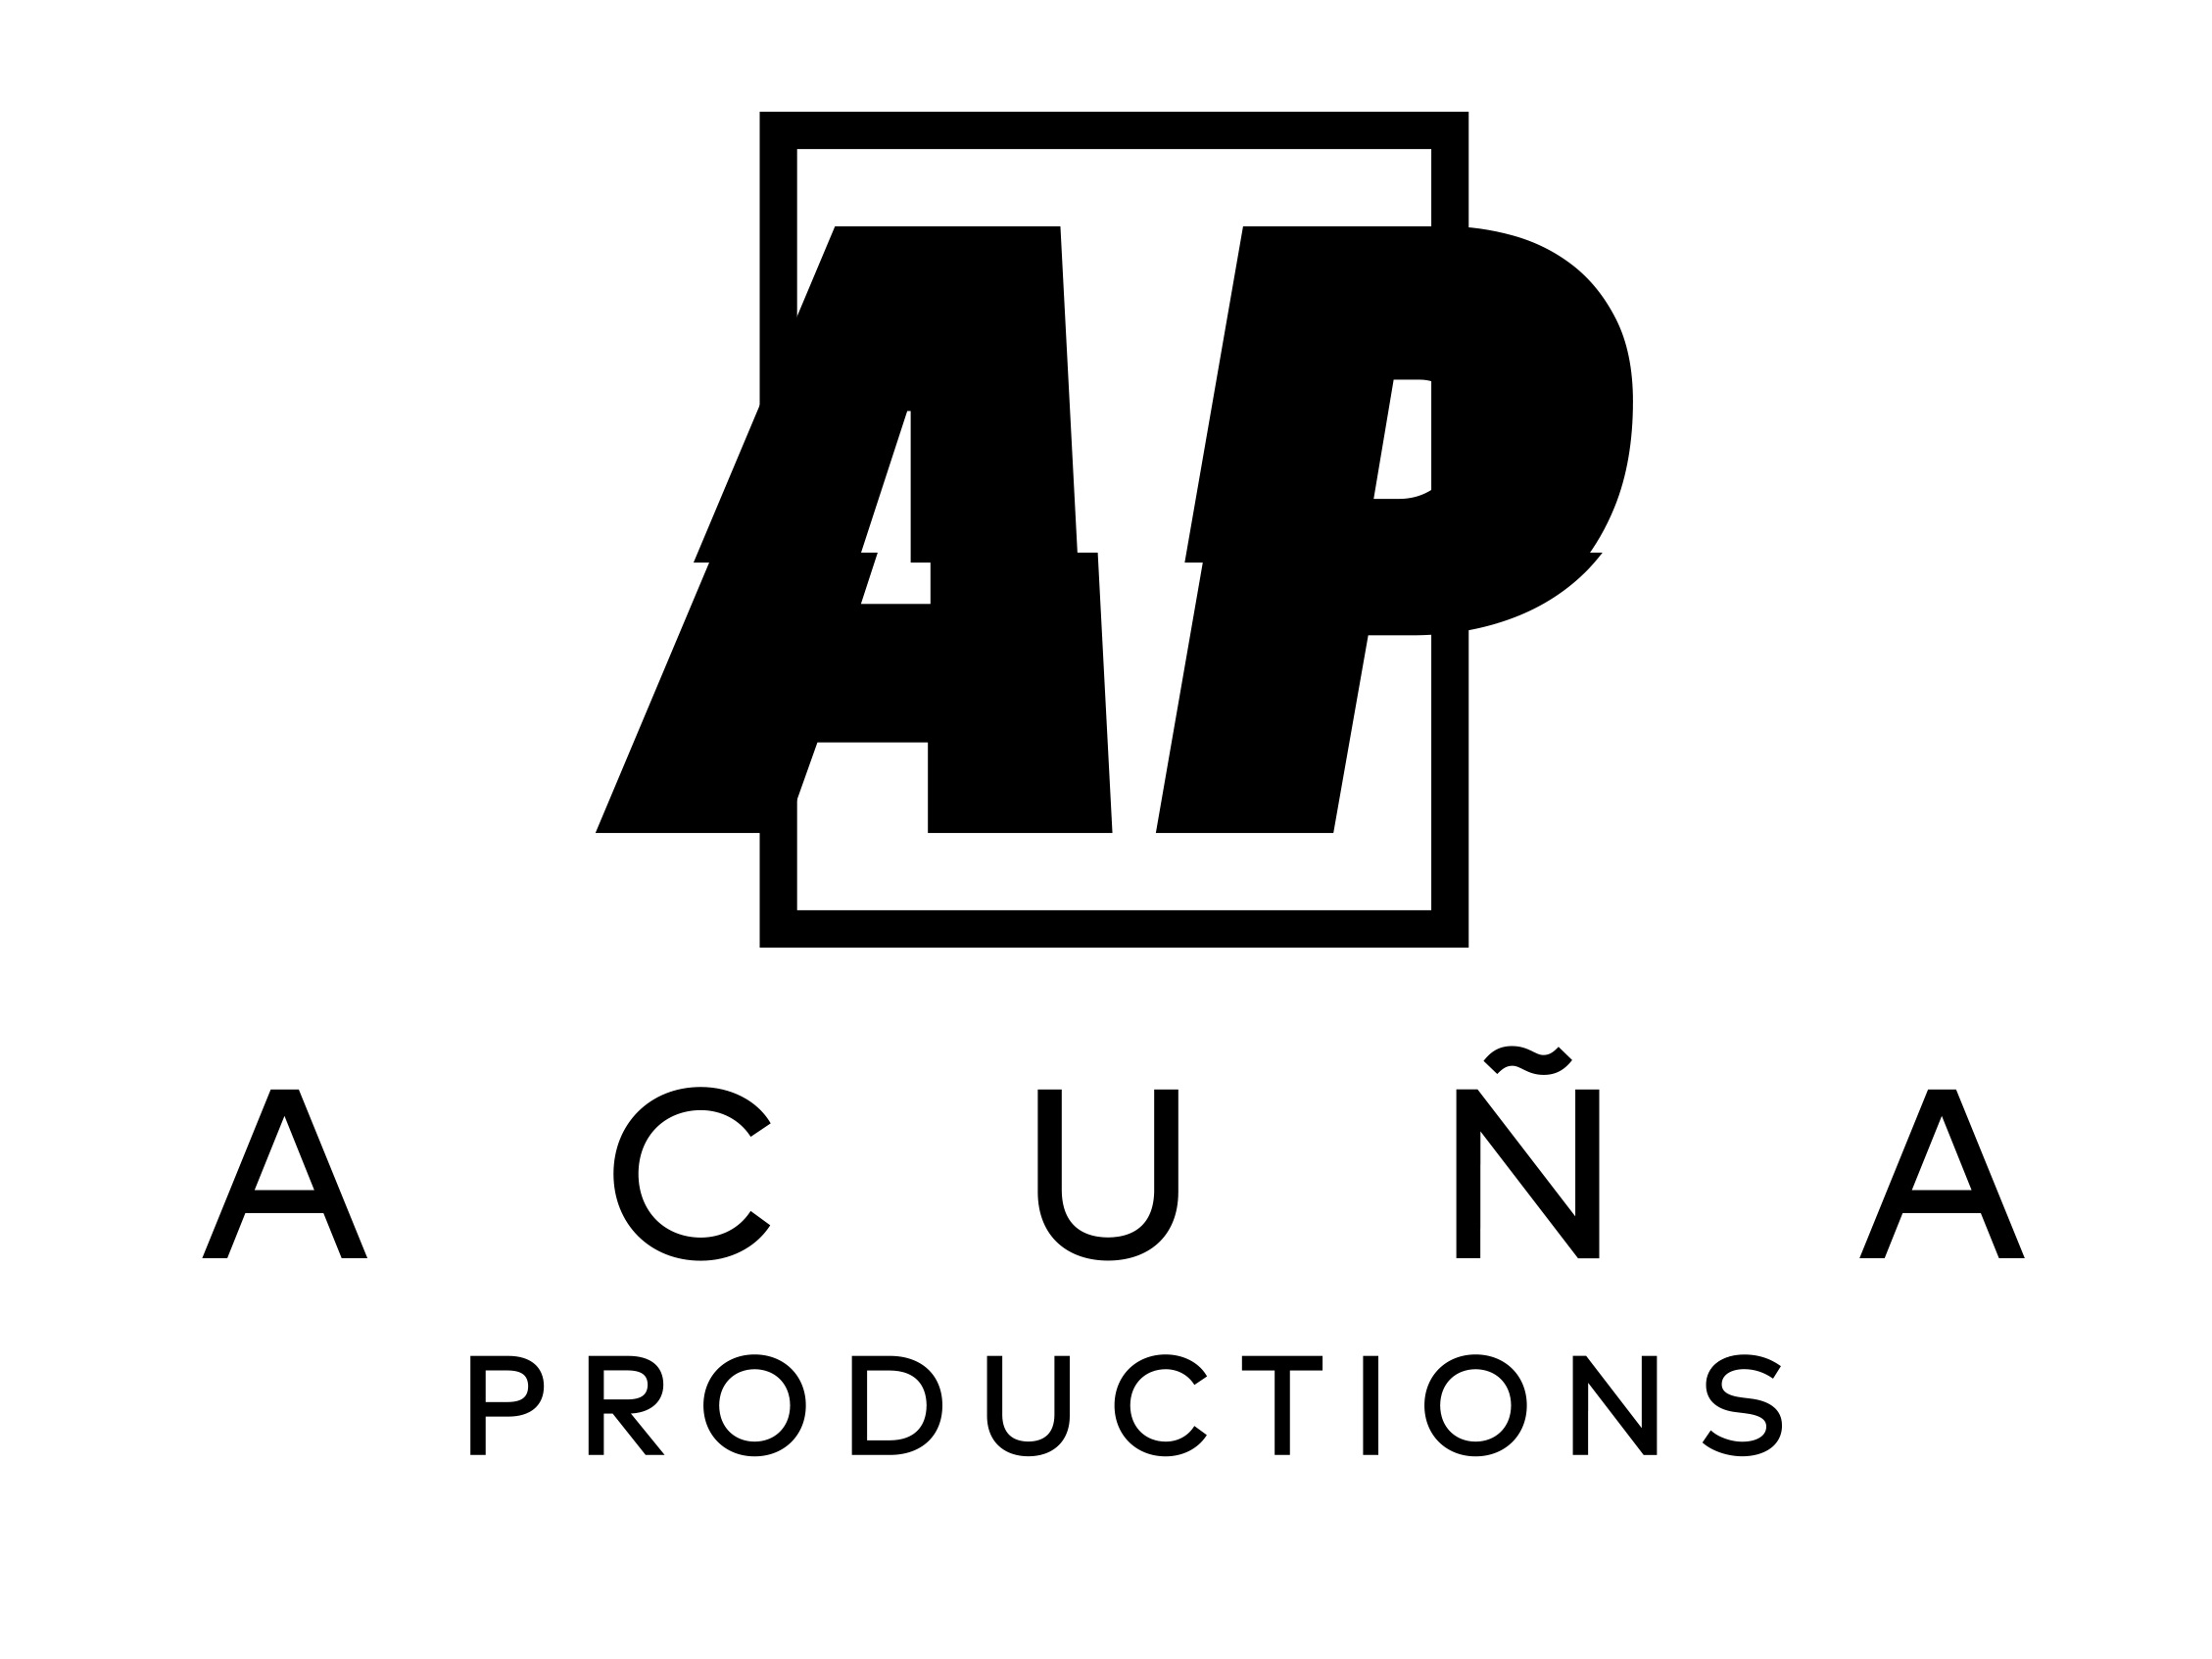 - ACUNA PRODUCTIONS IS A FULL SERVICE PRODUCTION COMPANY OUT OF LOS ANGELES, CA AND DALLAS, TX. WE SPECIALIZE IN ALL FORMATS OF FILM; NARRATIVE, COMMERCIALS, MUSIC VIDEOS, ETC. IF IT HAS A STORY WE WANT TO TELL IT! WE AIM TO PROVIDE HIGH QUALITY CONENT THAT WILL HELP OUR CLIENTS MAXIMIZE THEIR REACH AND TOUCH PEOPLE ALONG THE WAY!